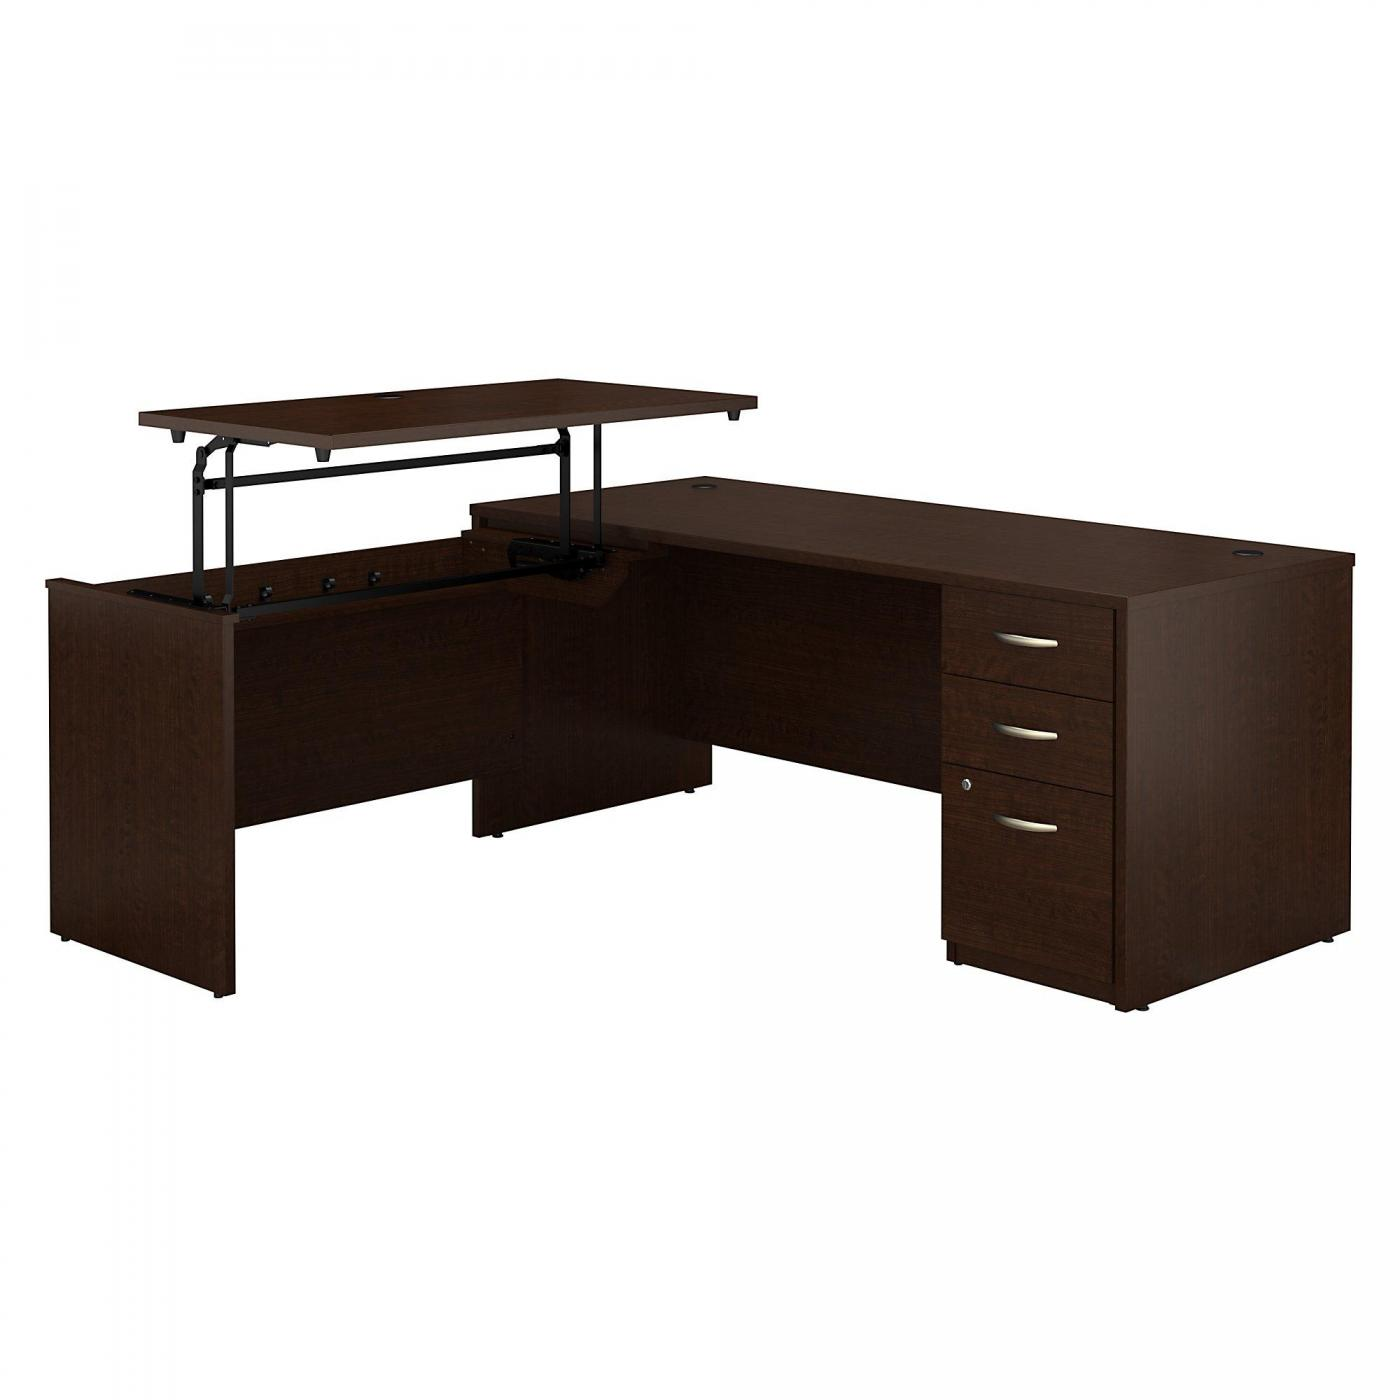 </b></font><b>BUSH BUSINESS FURNITURE SERIES C ELITE 72W X 30D 3 POSITION SIT TO STAND L SHAPED DESK WITH 3 DRAWER FILE CABINET. FREE SHIPPING. VIDEO:</b></font>  VIDEO BELOW. <p>RATING:&#11088;&#11088;&#11088;&#11088;&#11088;</b></font></b>